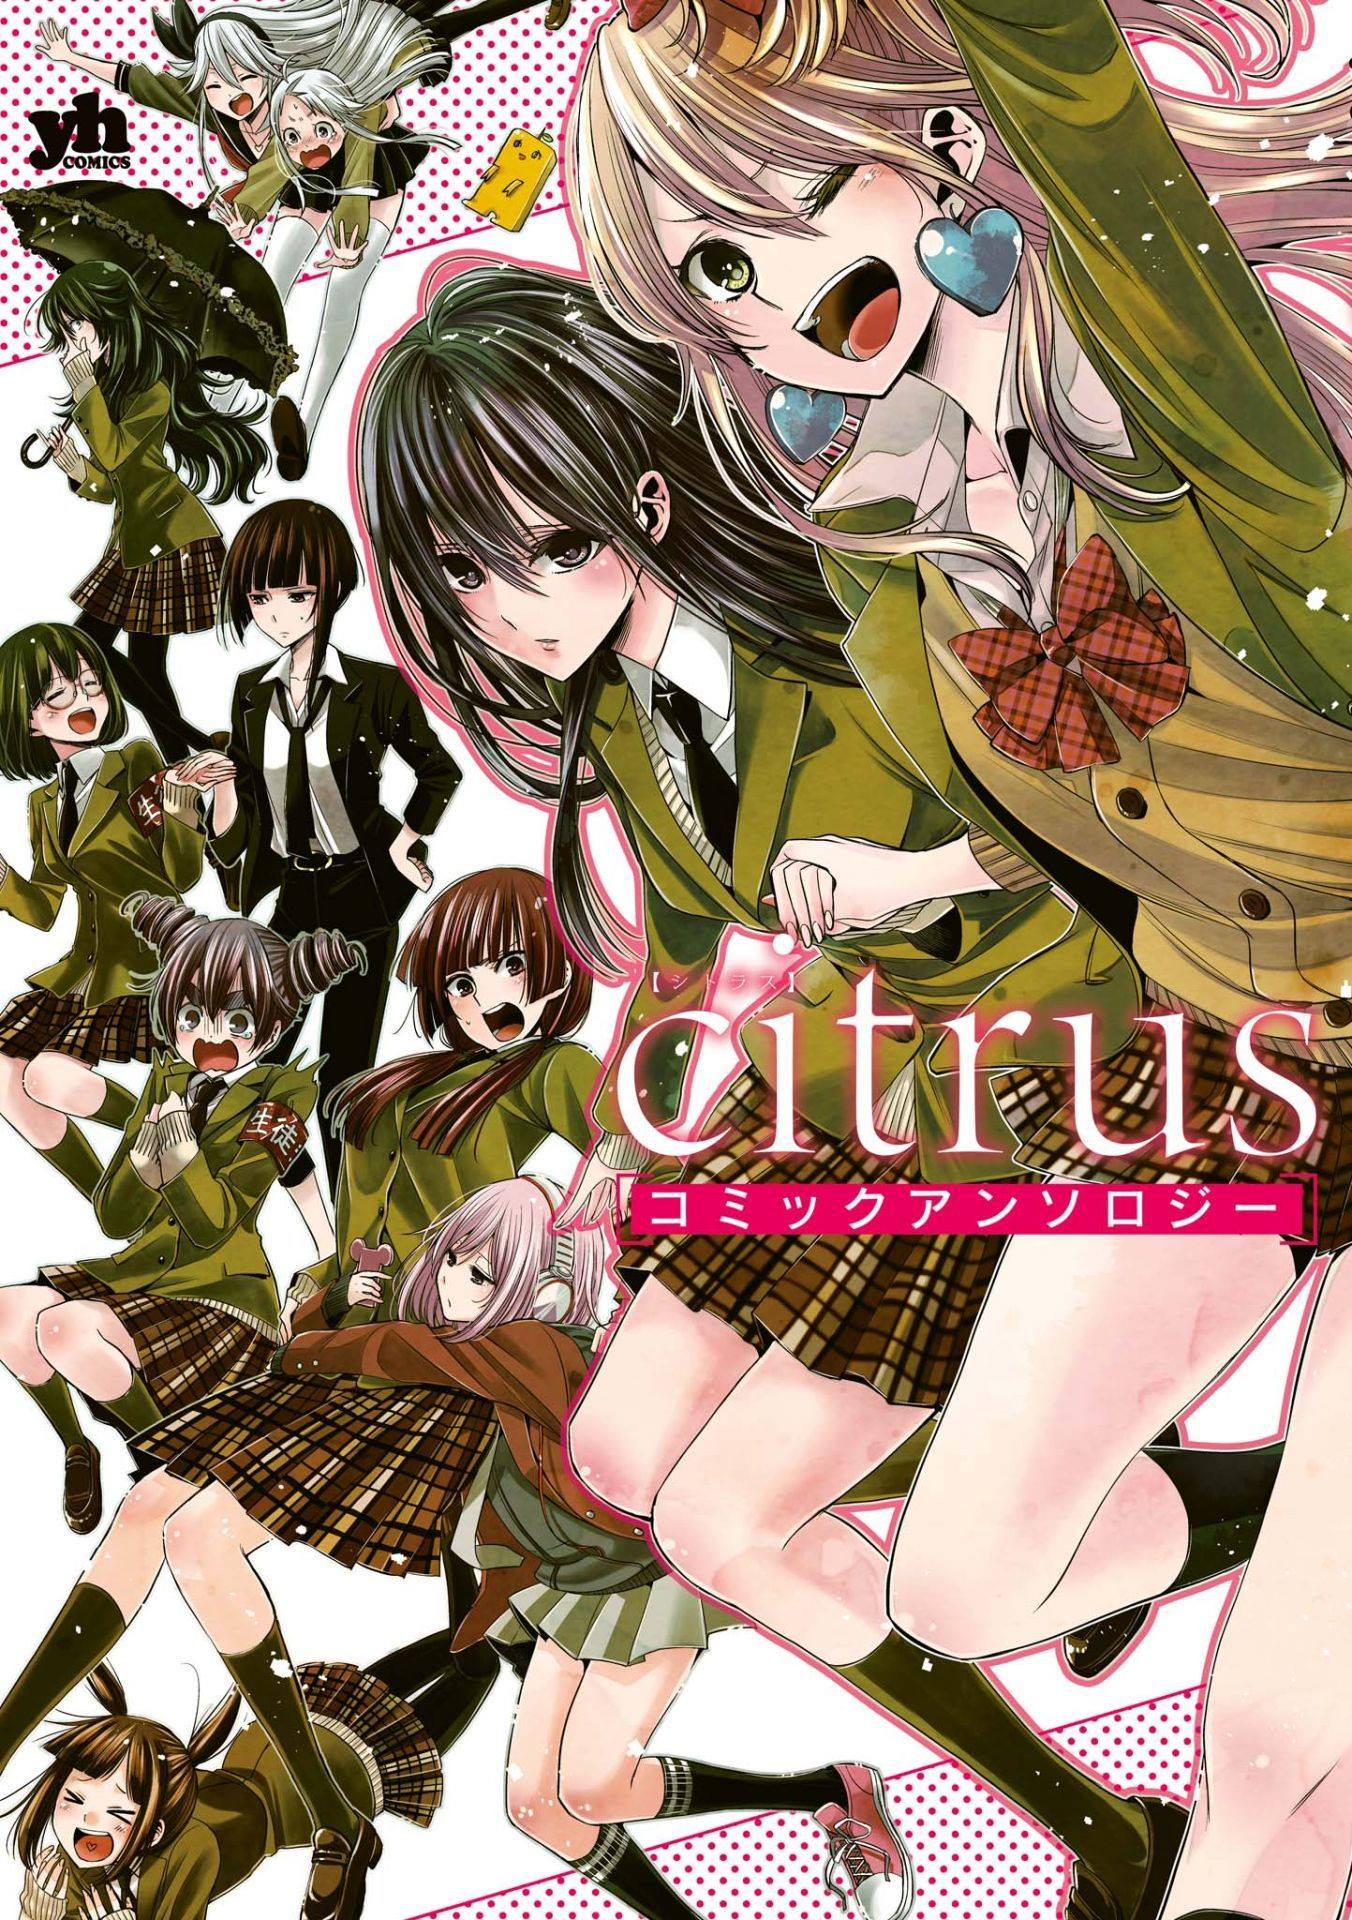 Scantrad - citrus Comic Anthology Chapitre 1